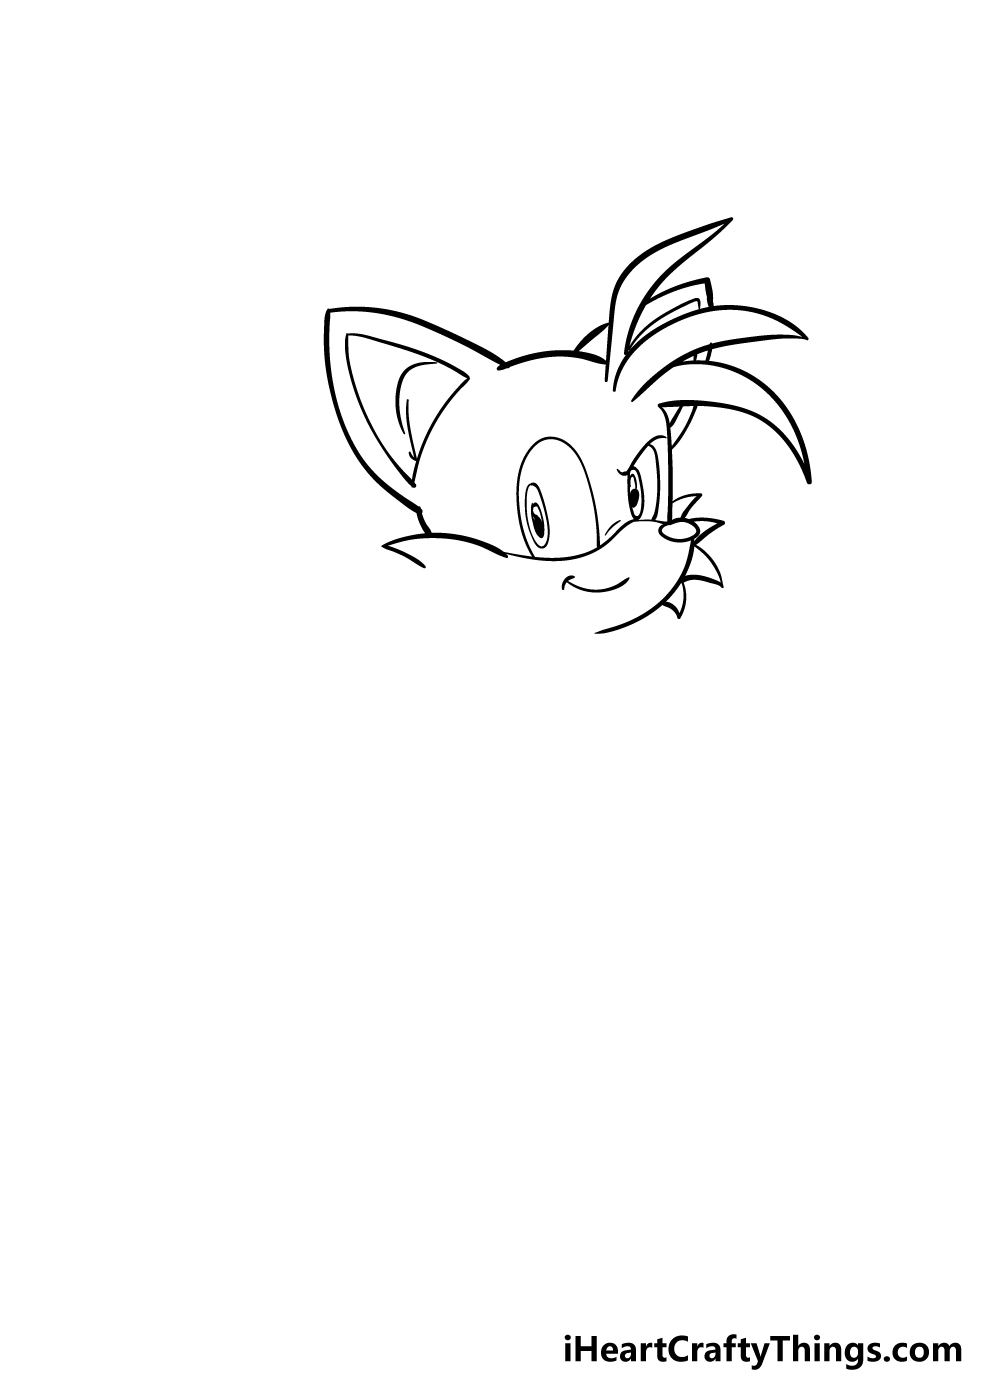 tails drawing step 3